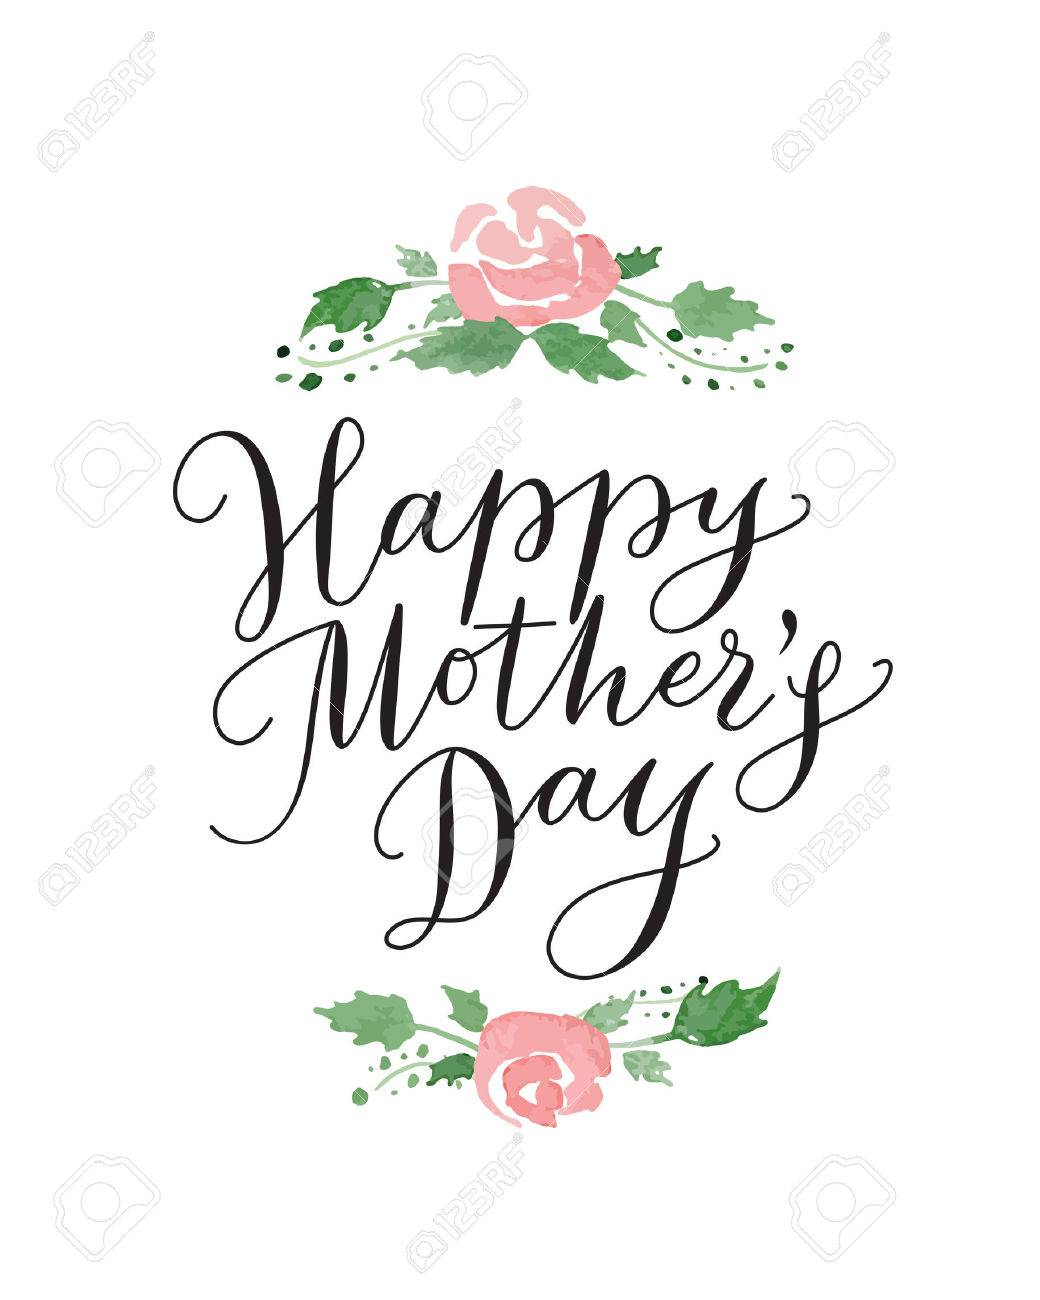 Happy mothers day wishes - m